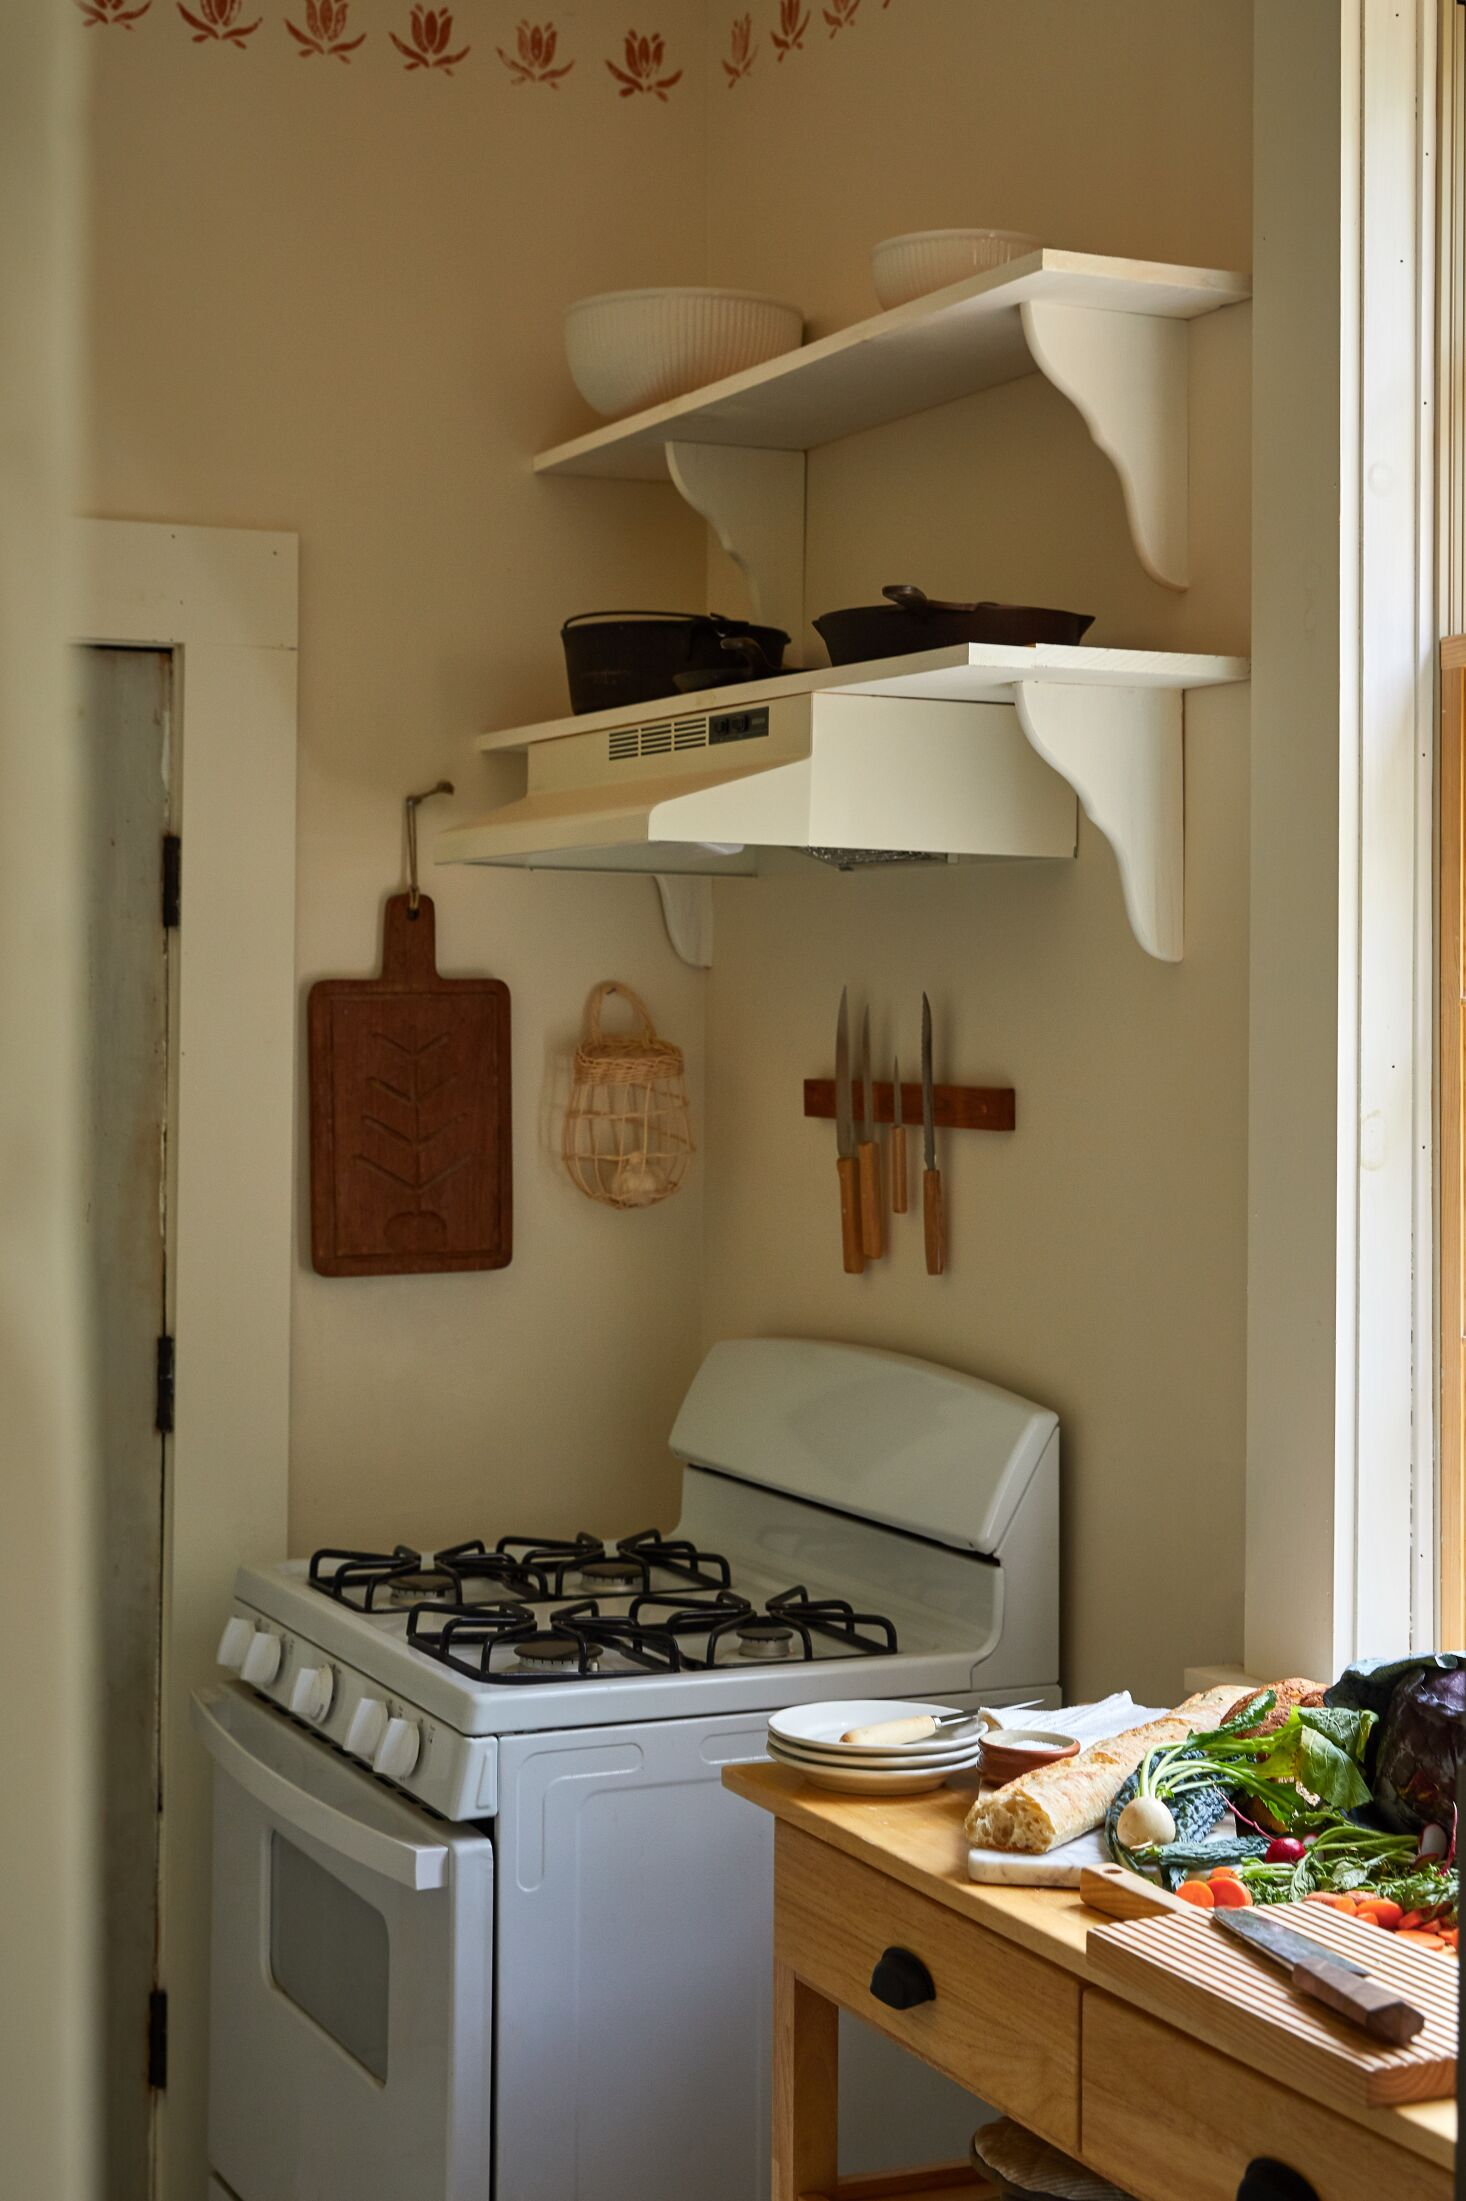 Remodeling 101 All About Stair Runners Kitchen at Bovina Farm and Fermentory, Photo by Christian Harder